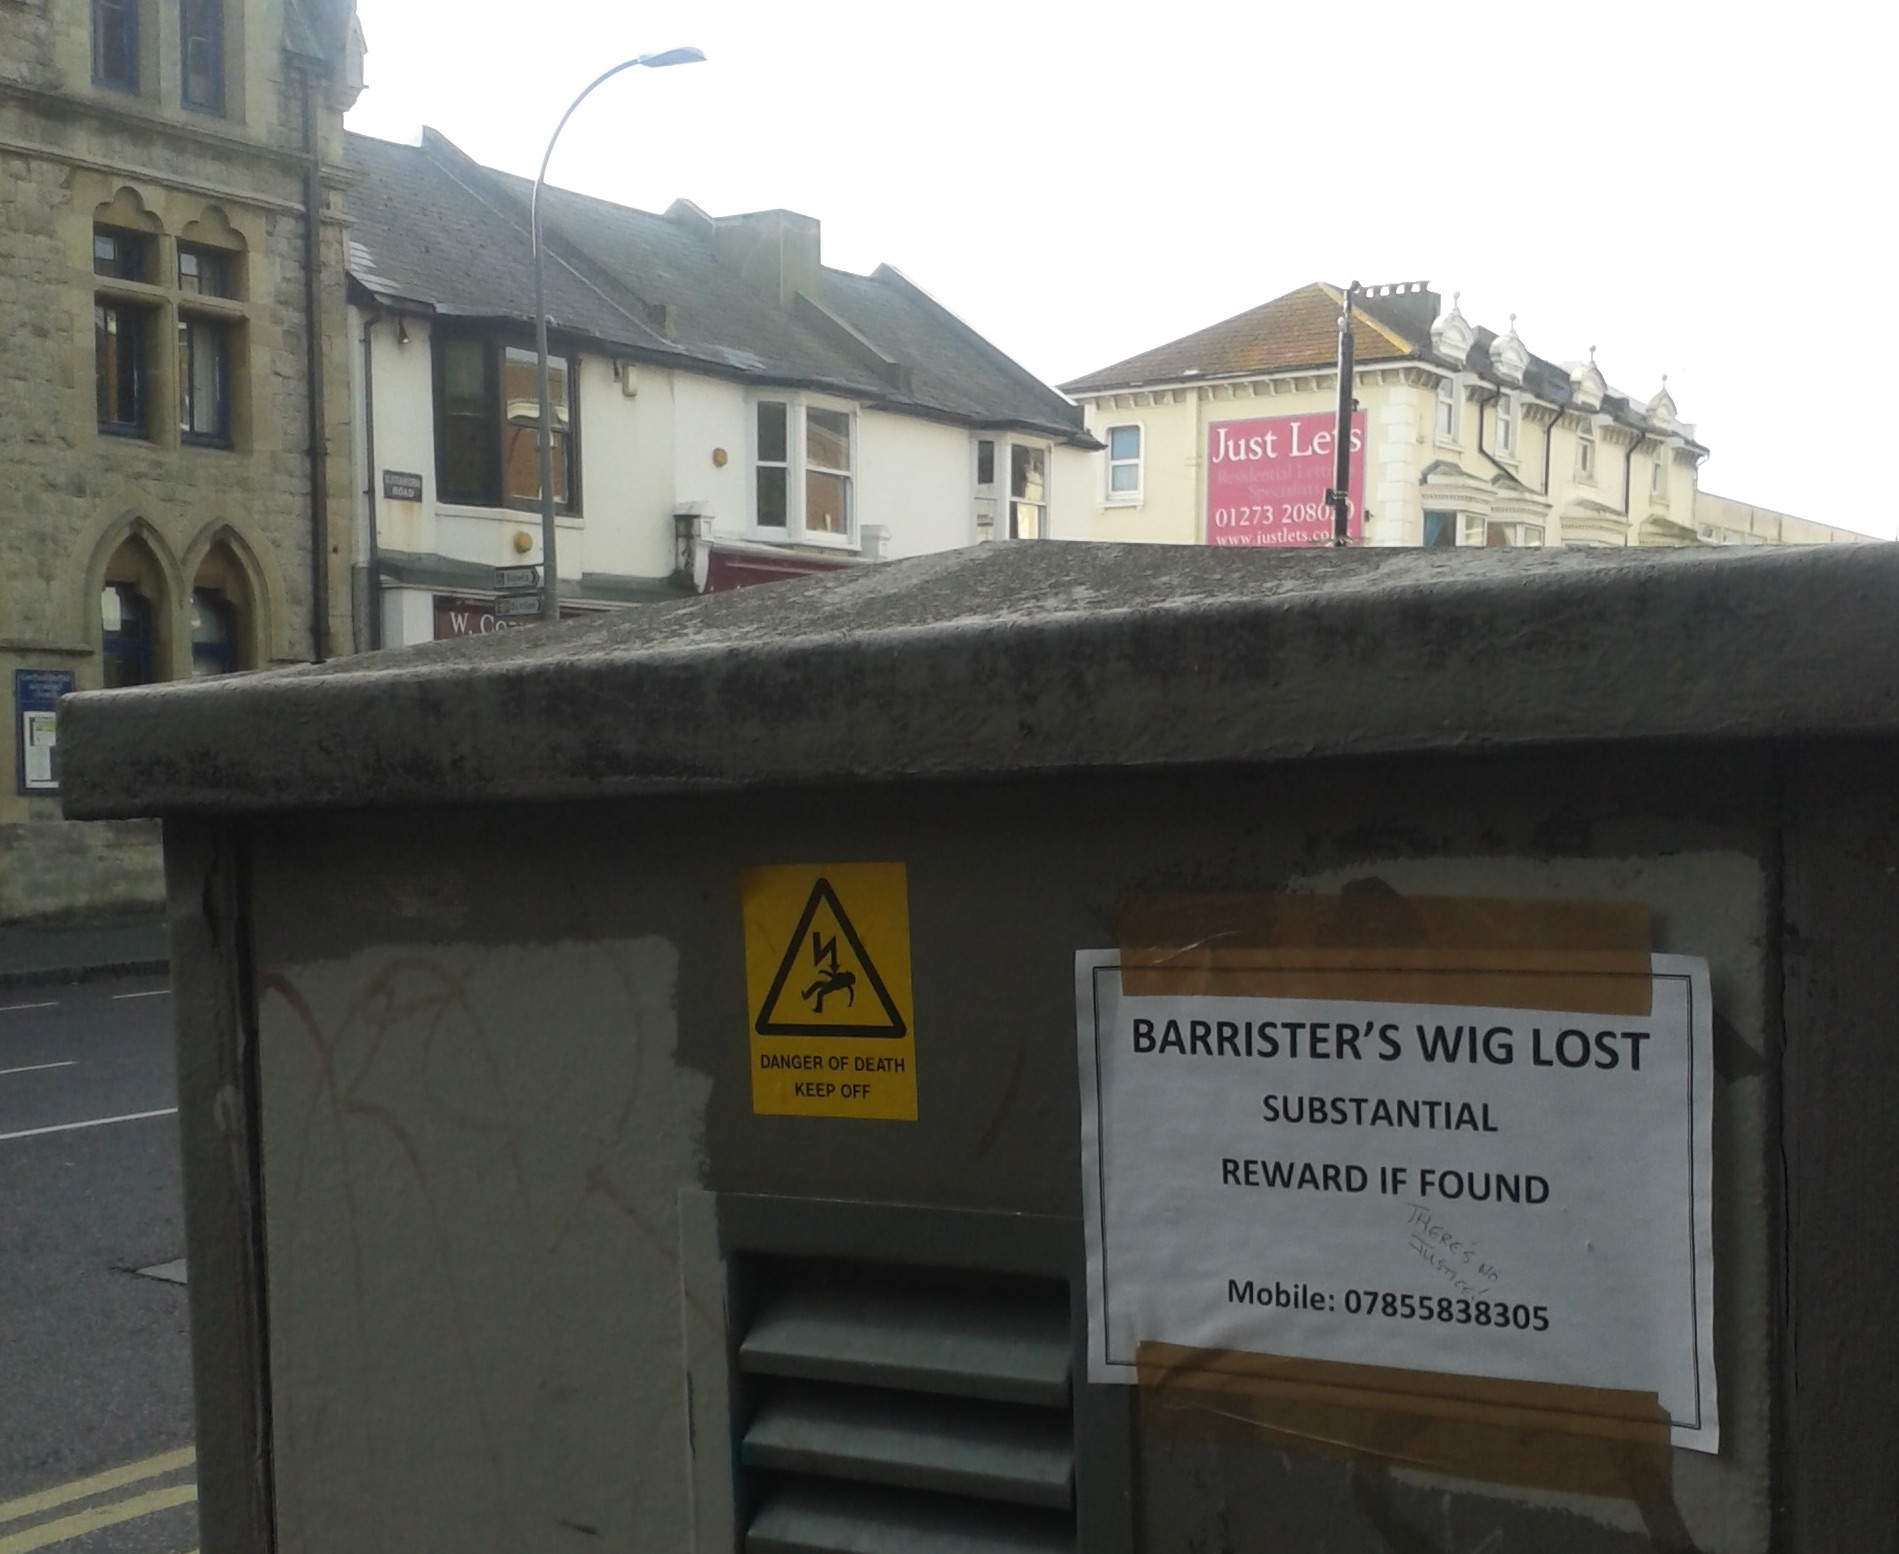 flyer advertising a lost barrister's wig, 2016